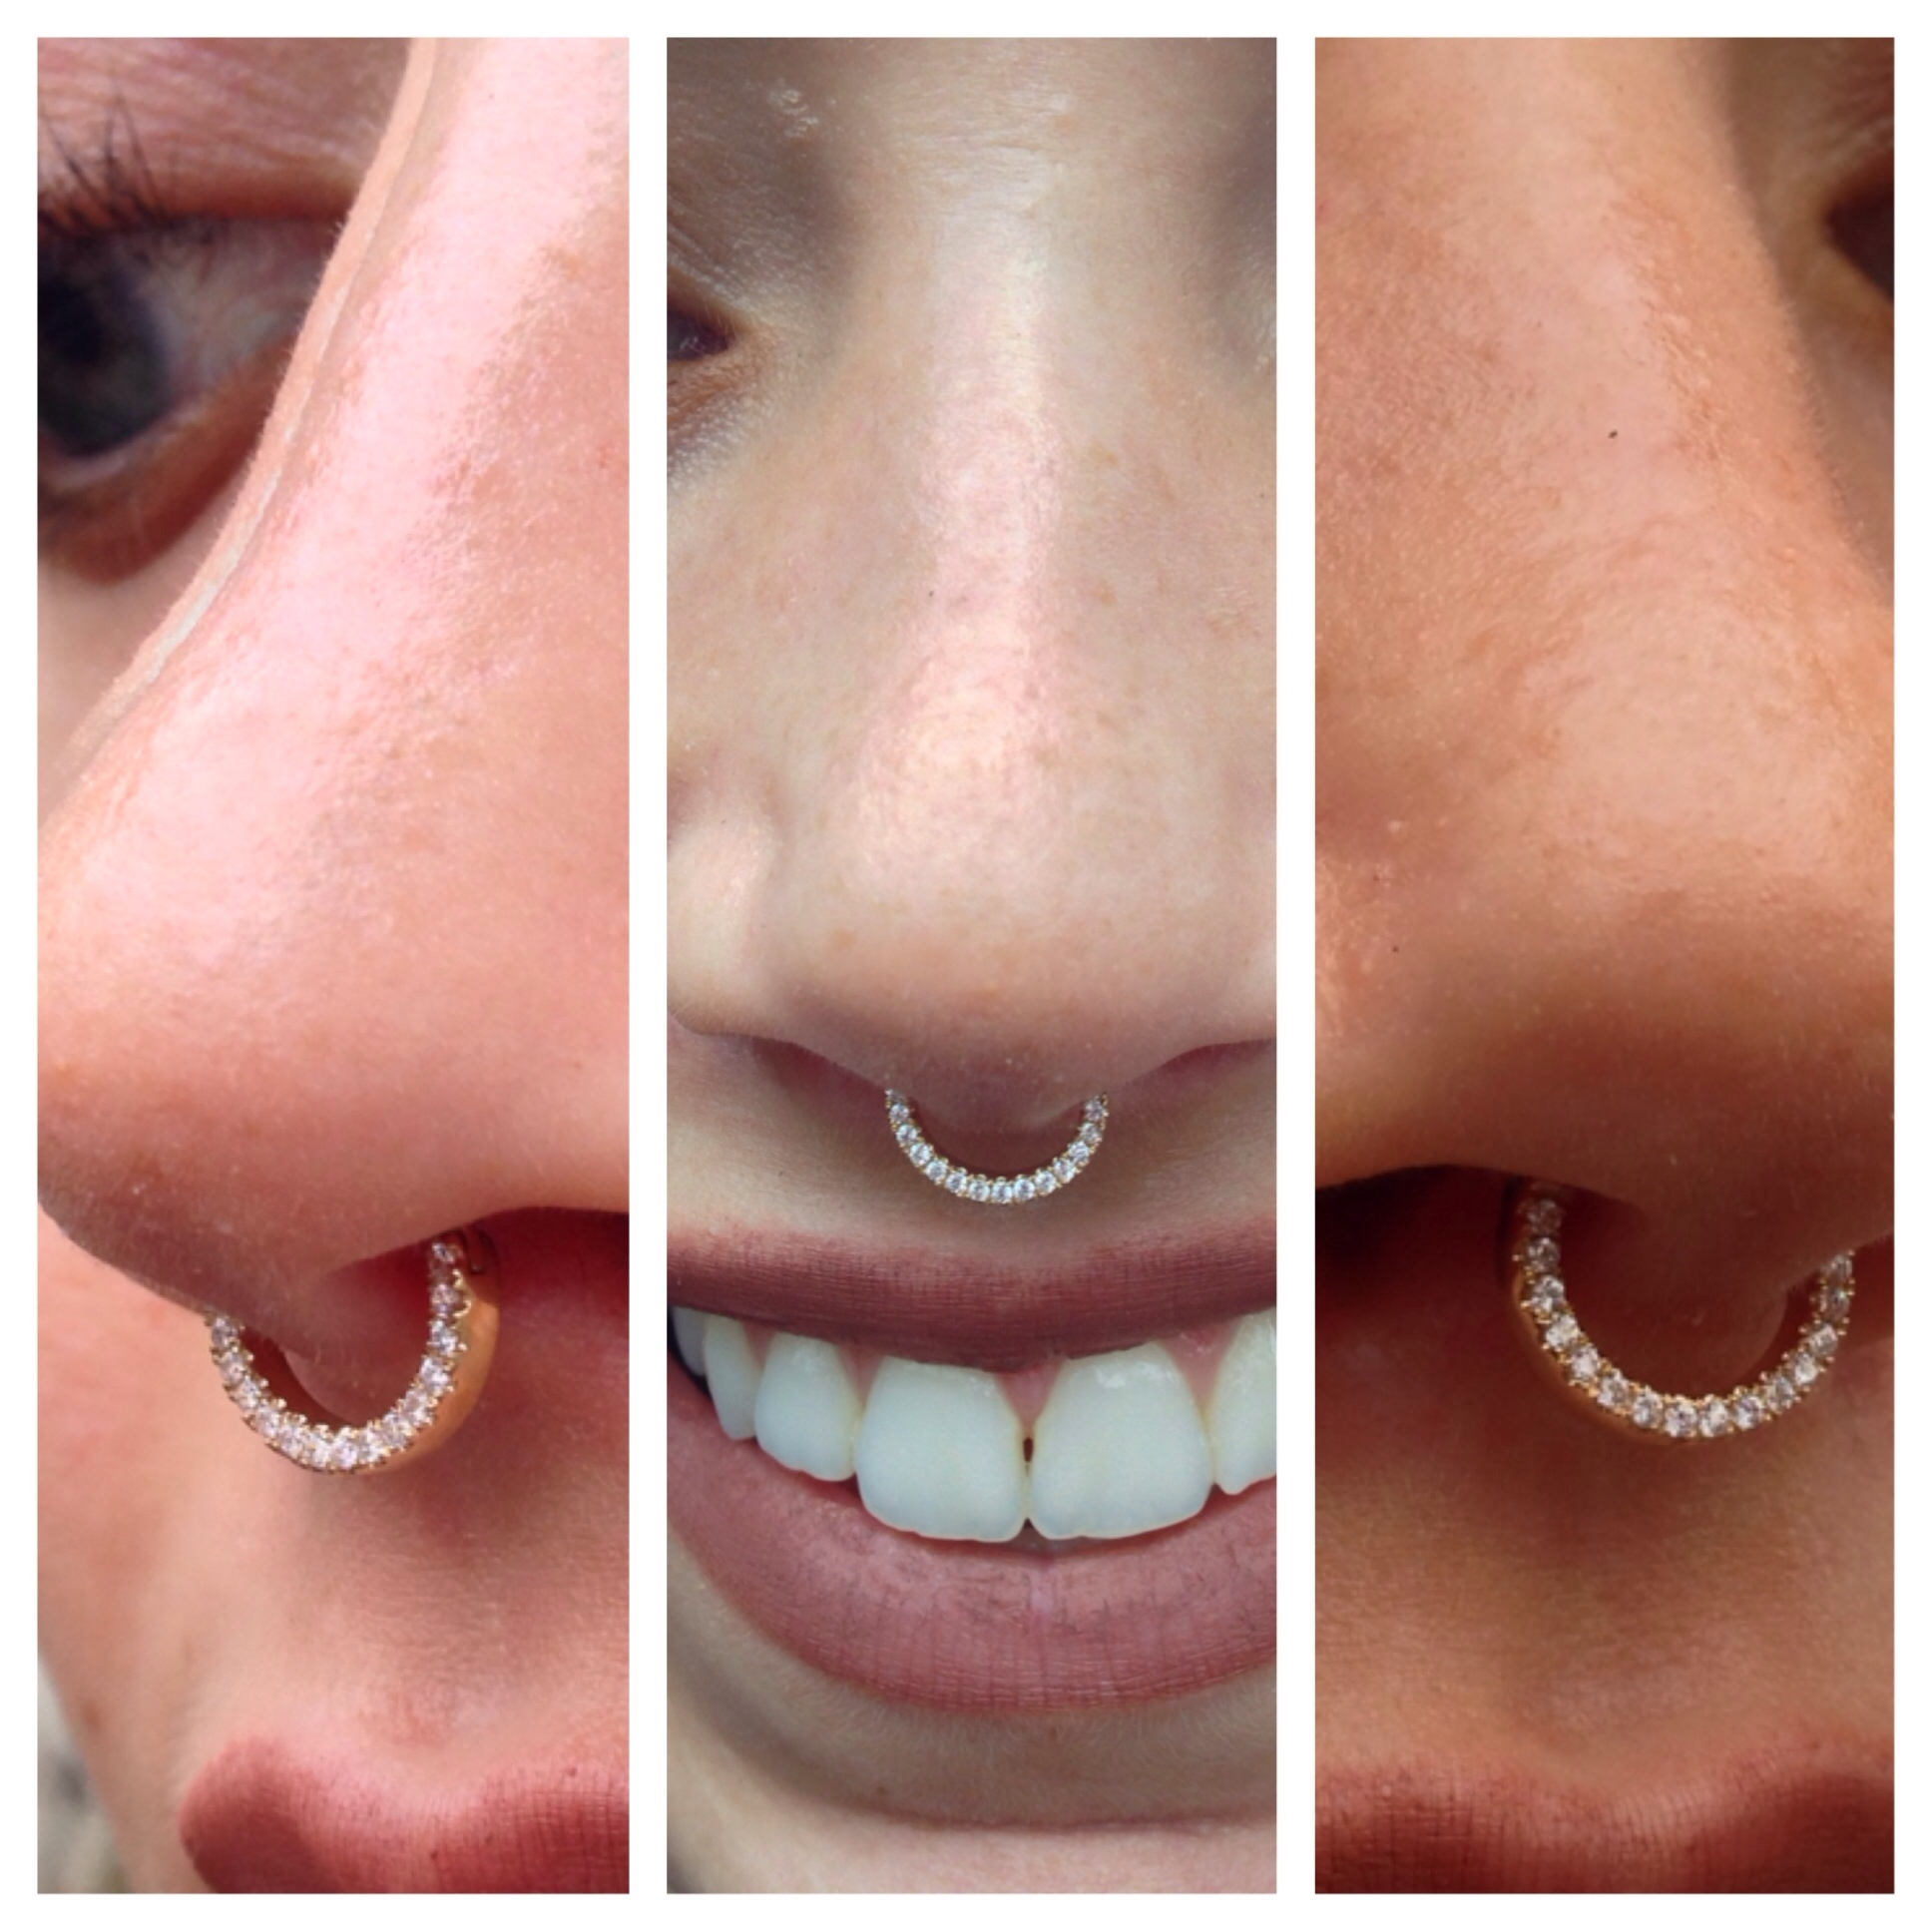 Septum Piercing With A 14K Yellow Gold Septum Clicker With White Pertaining To Latest Chevron Septum Rings (View 10 of 15)